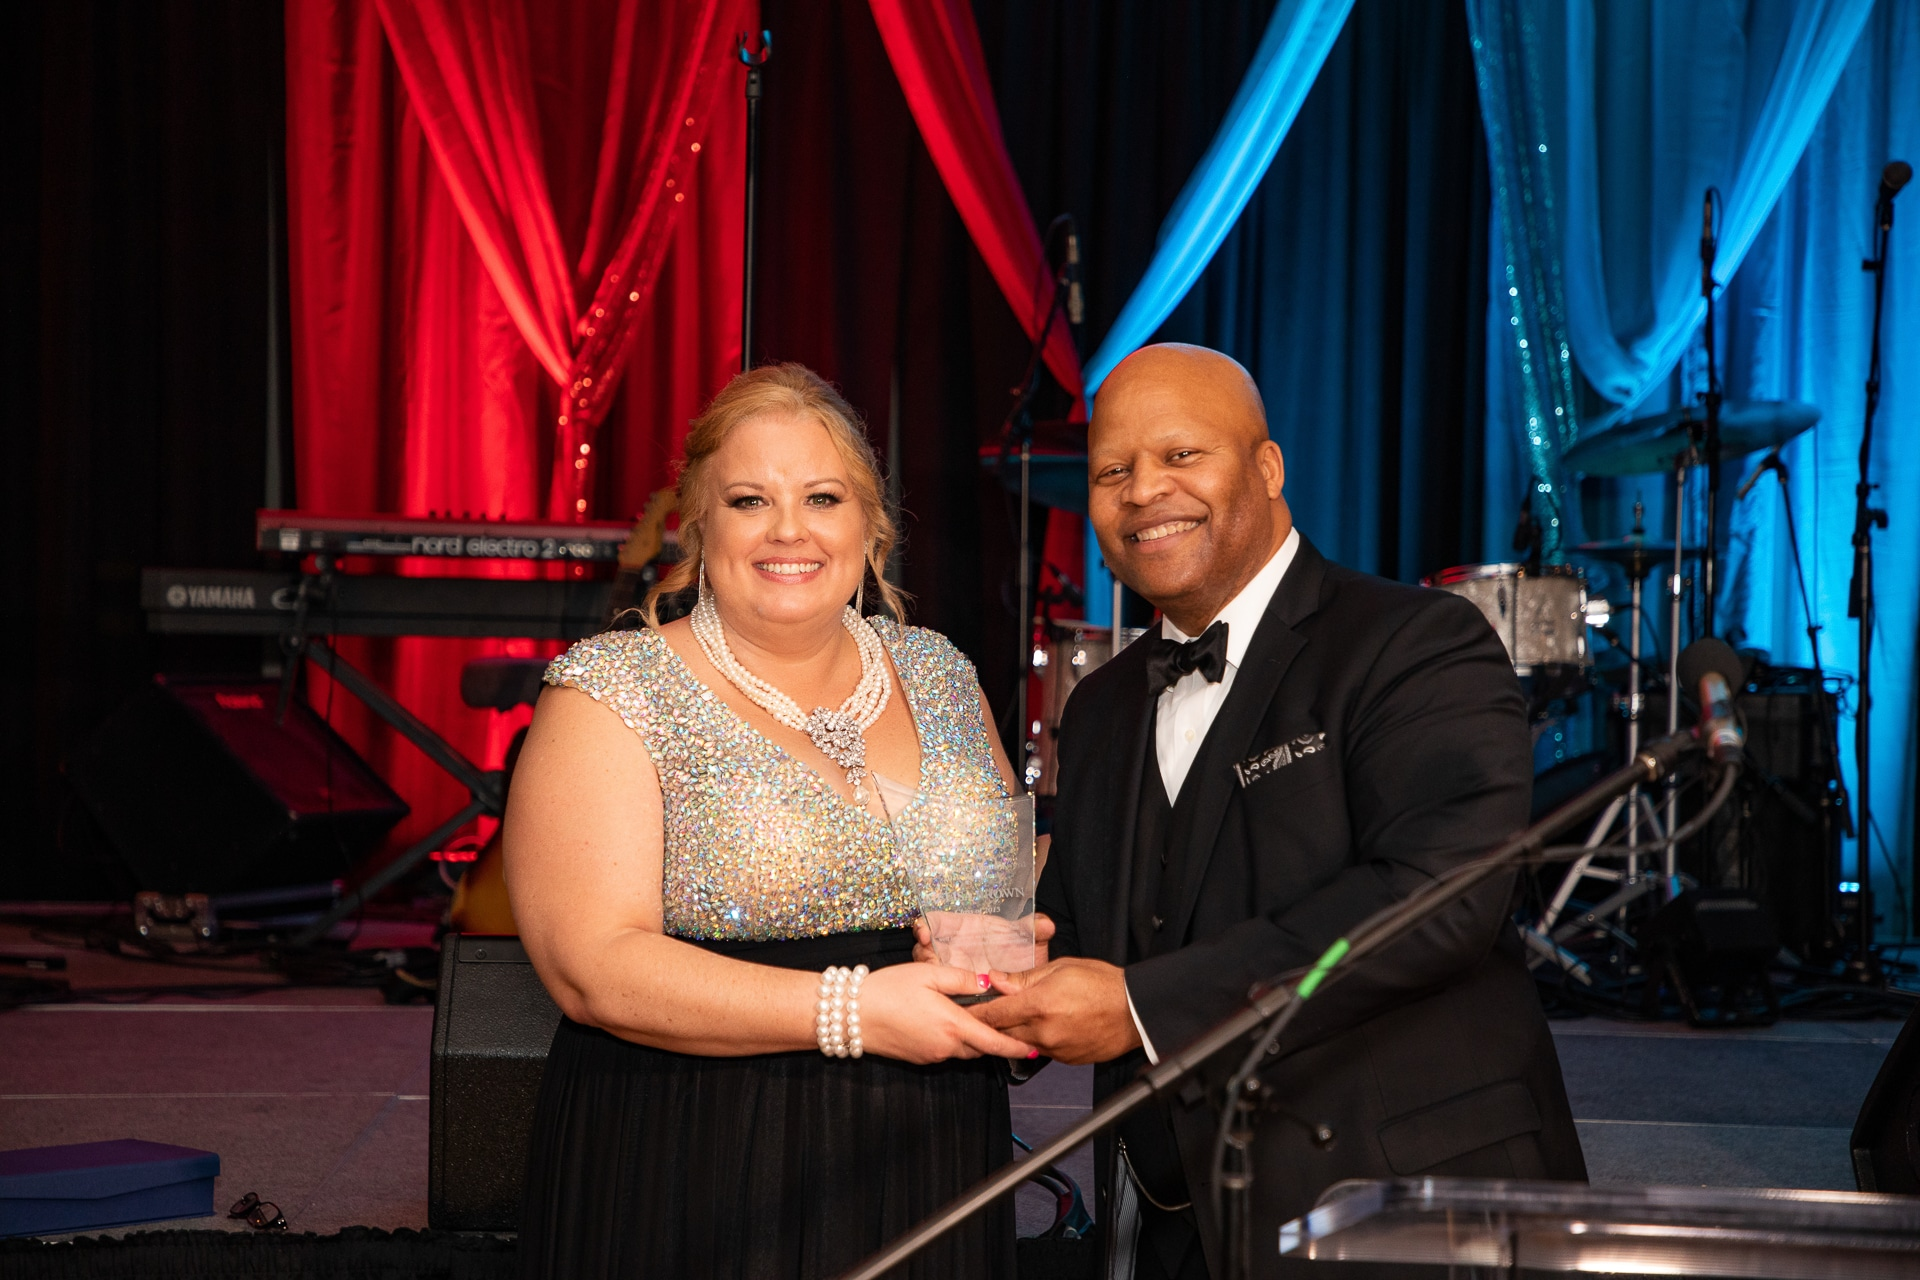 La Vergne Vice-Mayor Melisa Brown with Dr. Torrence